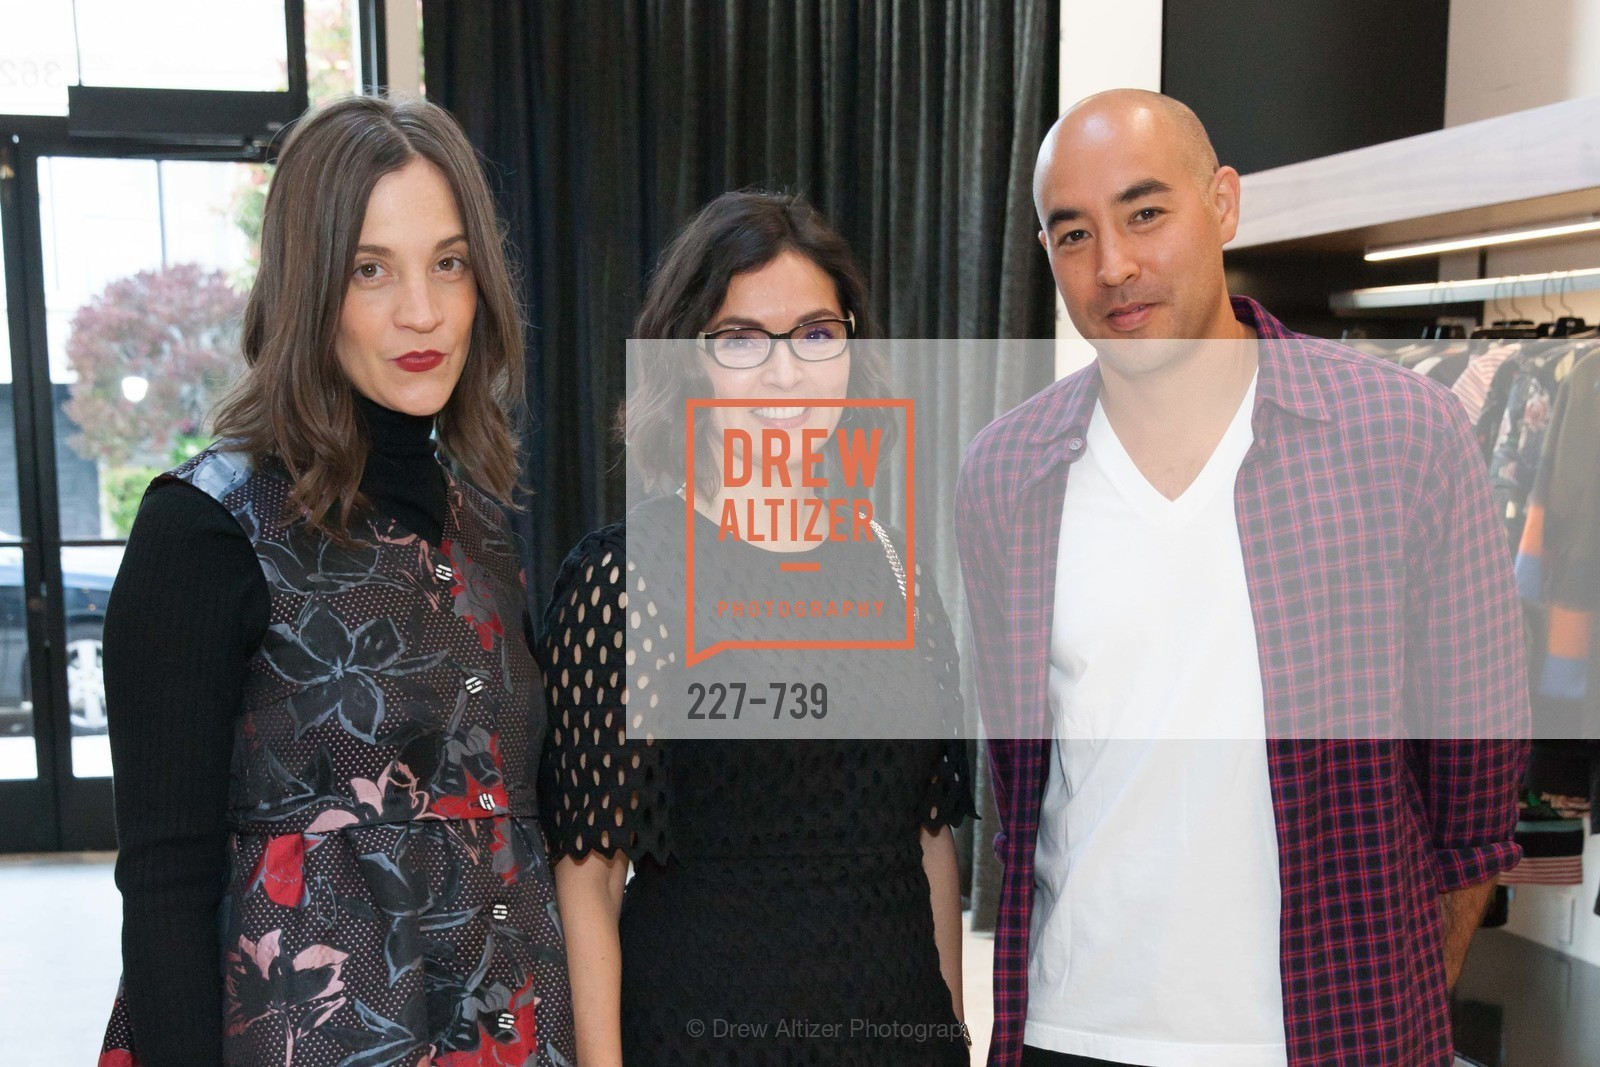 Erin Beatty, Claudia Ceniceros, Max Osterweis, BETTY LIN Store Opening - VIPS, US, May 19th, 2015,Drew Altizer, Drew Altizer Photography, full-service agency, private events, San Francisco photographer, photographer california